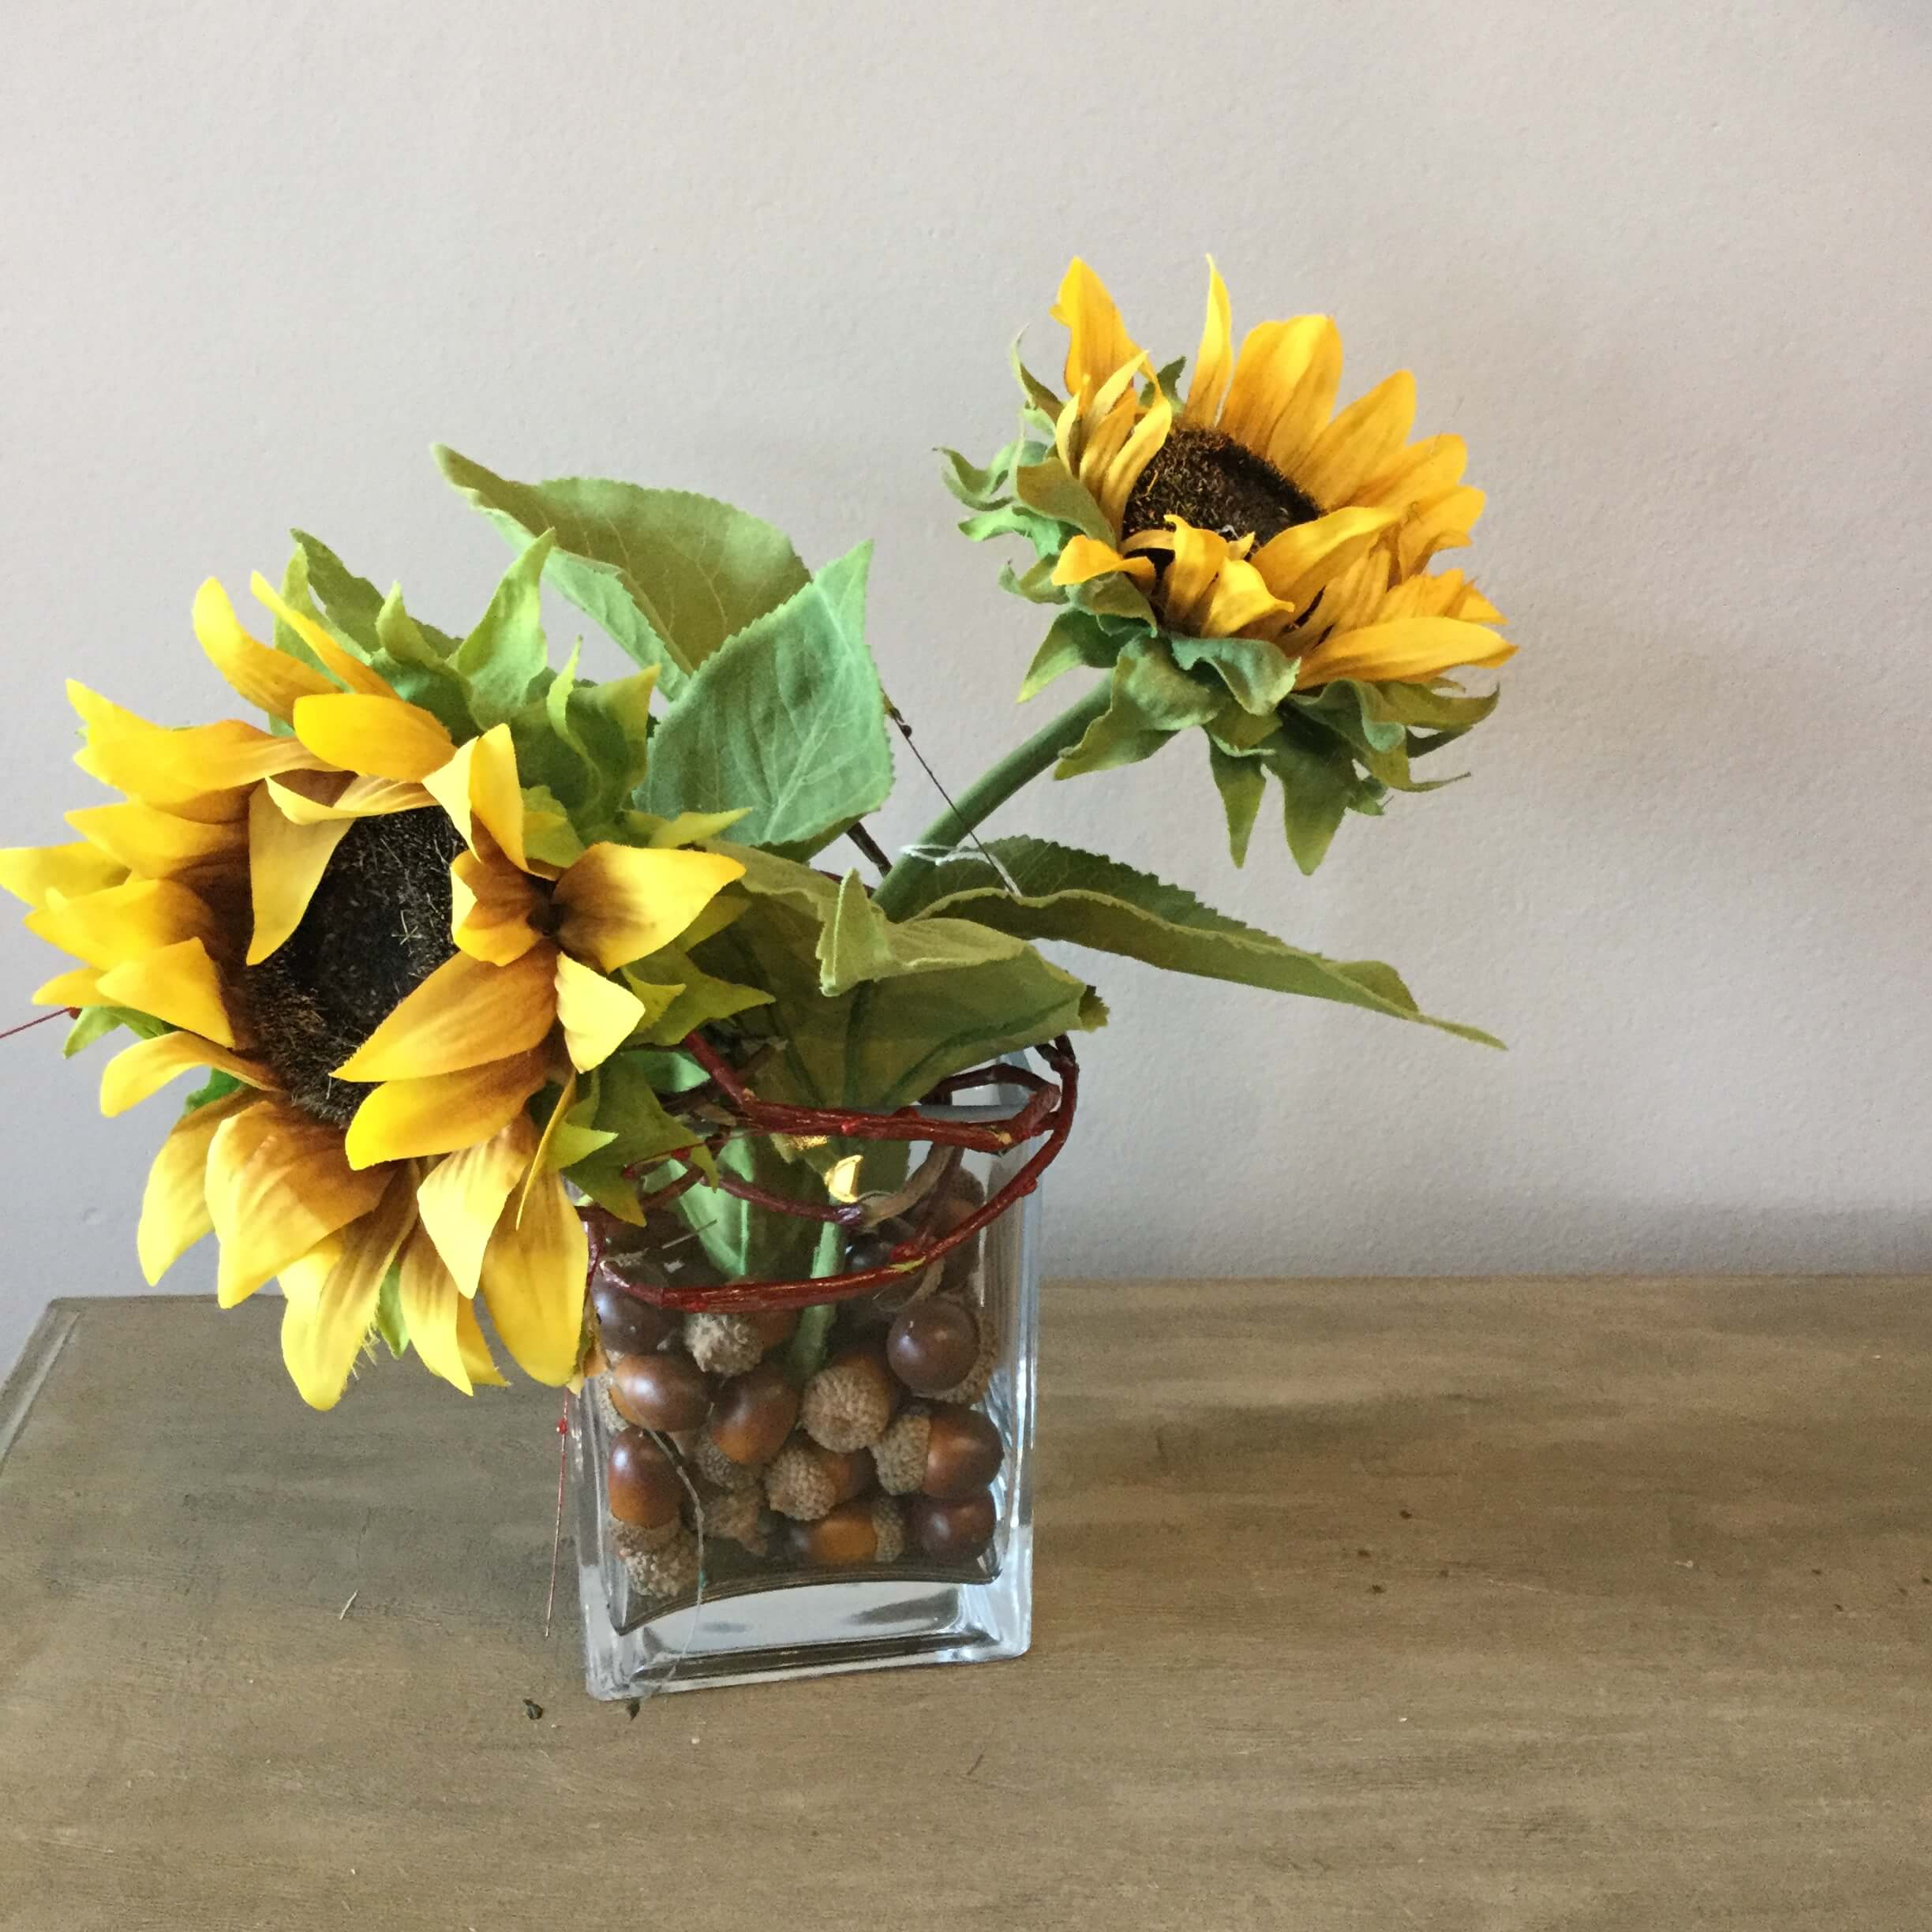 11 yellow sunflowers in glass vase with acorns and vine ps 11 yellow sunflowers in glass vase with acorns and vine ps flowers and interiors mightylinksfo